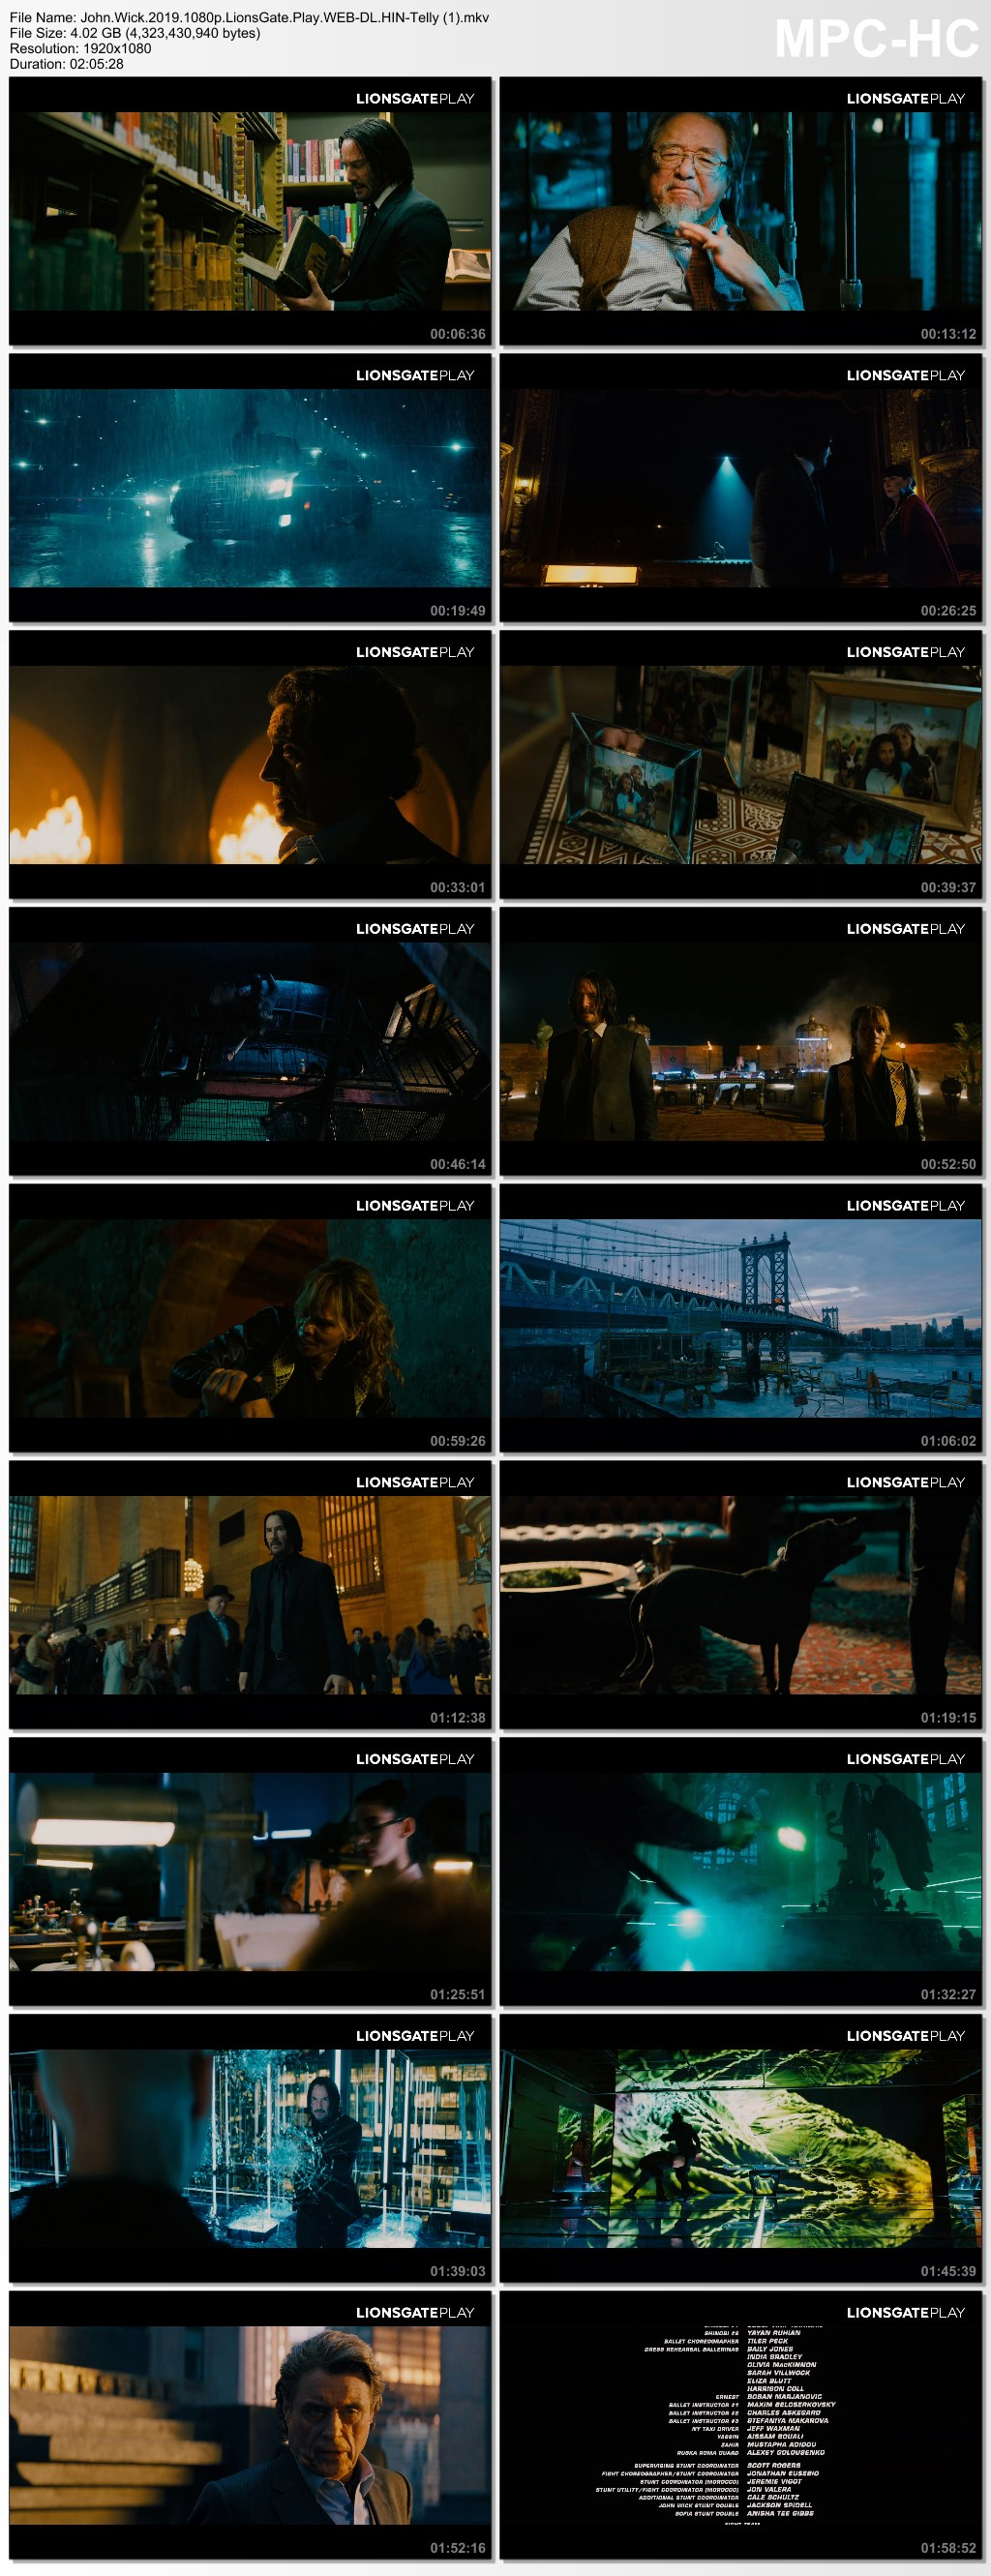 John.Wick.2019.1080p.LionsGate.Play.WEB-DL.HIN-Telly1.mkv_thumbs_2020.04.10_19.53.498bd3a.jpg